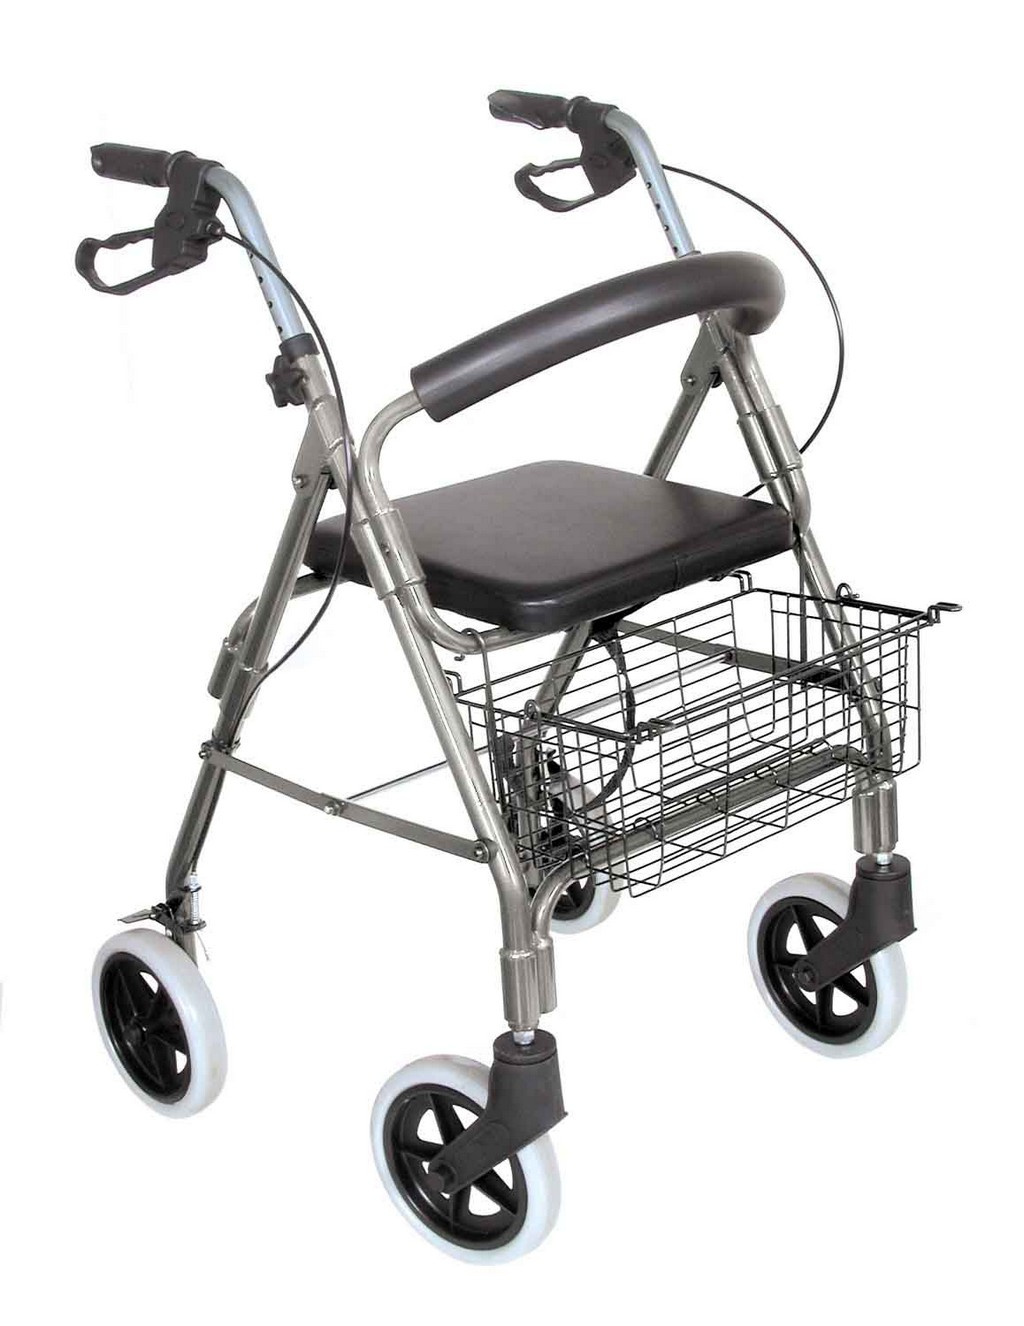 medline freedom rollator, rollator norge, lumex rollator parts, medline ultra-light rollator